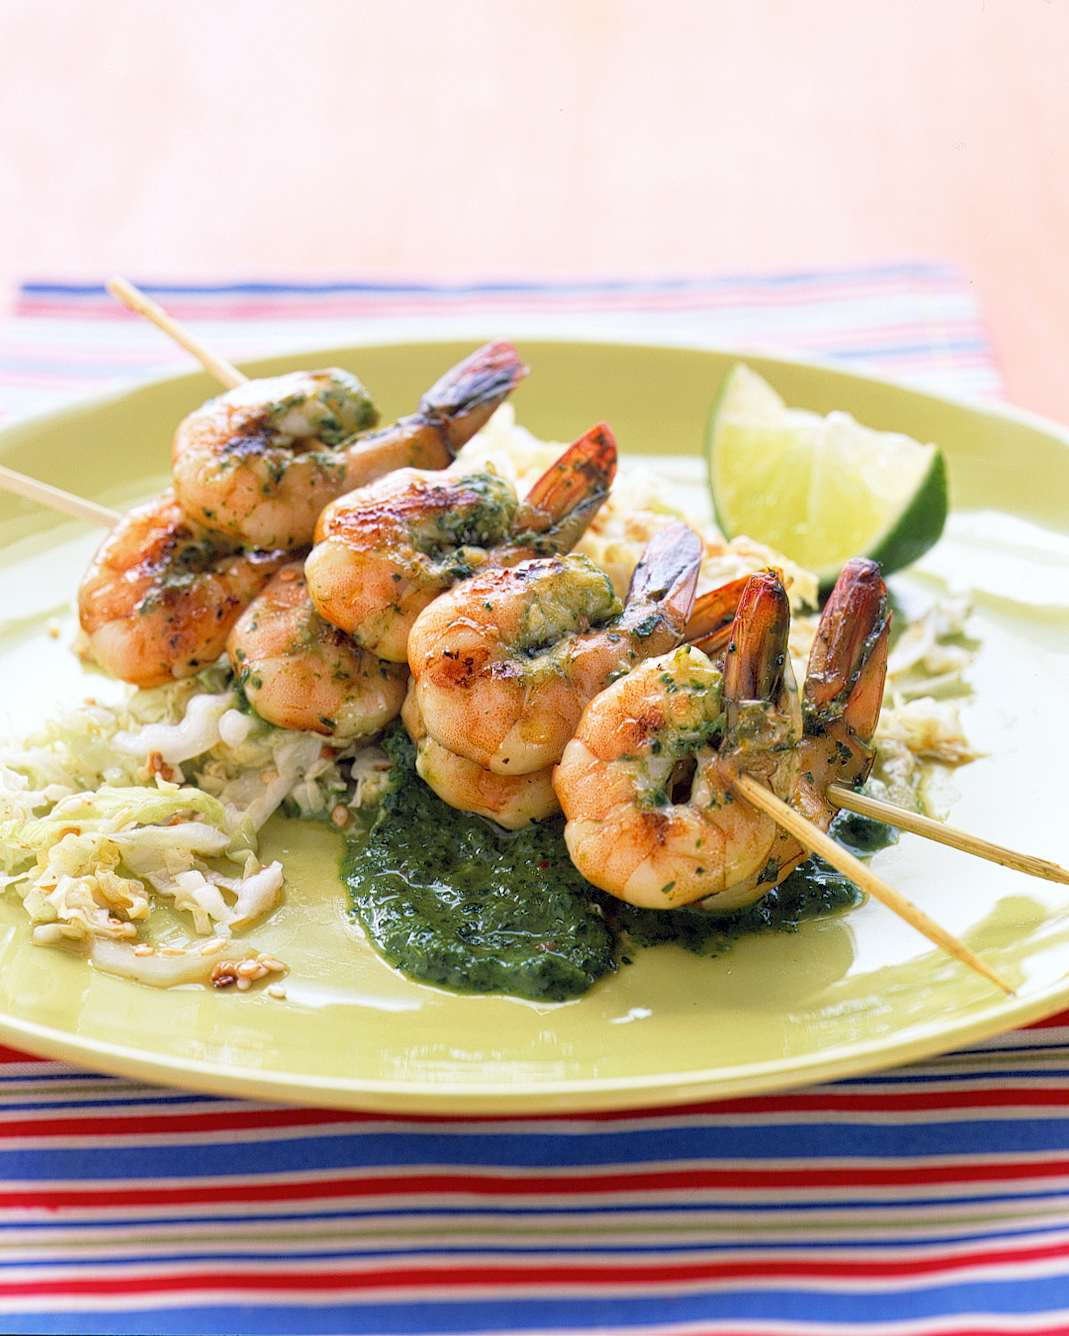 Cilantro-Grilled Shrimp with Sesame Cabbage